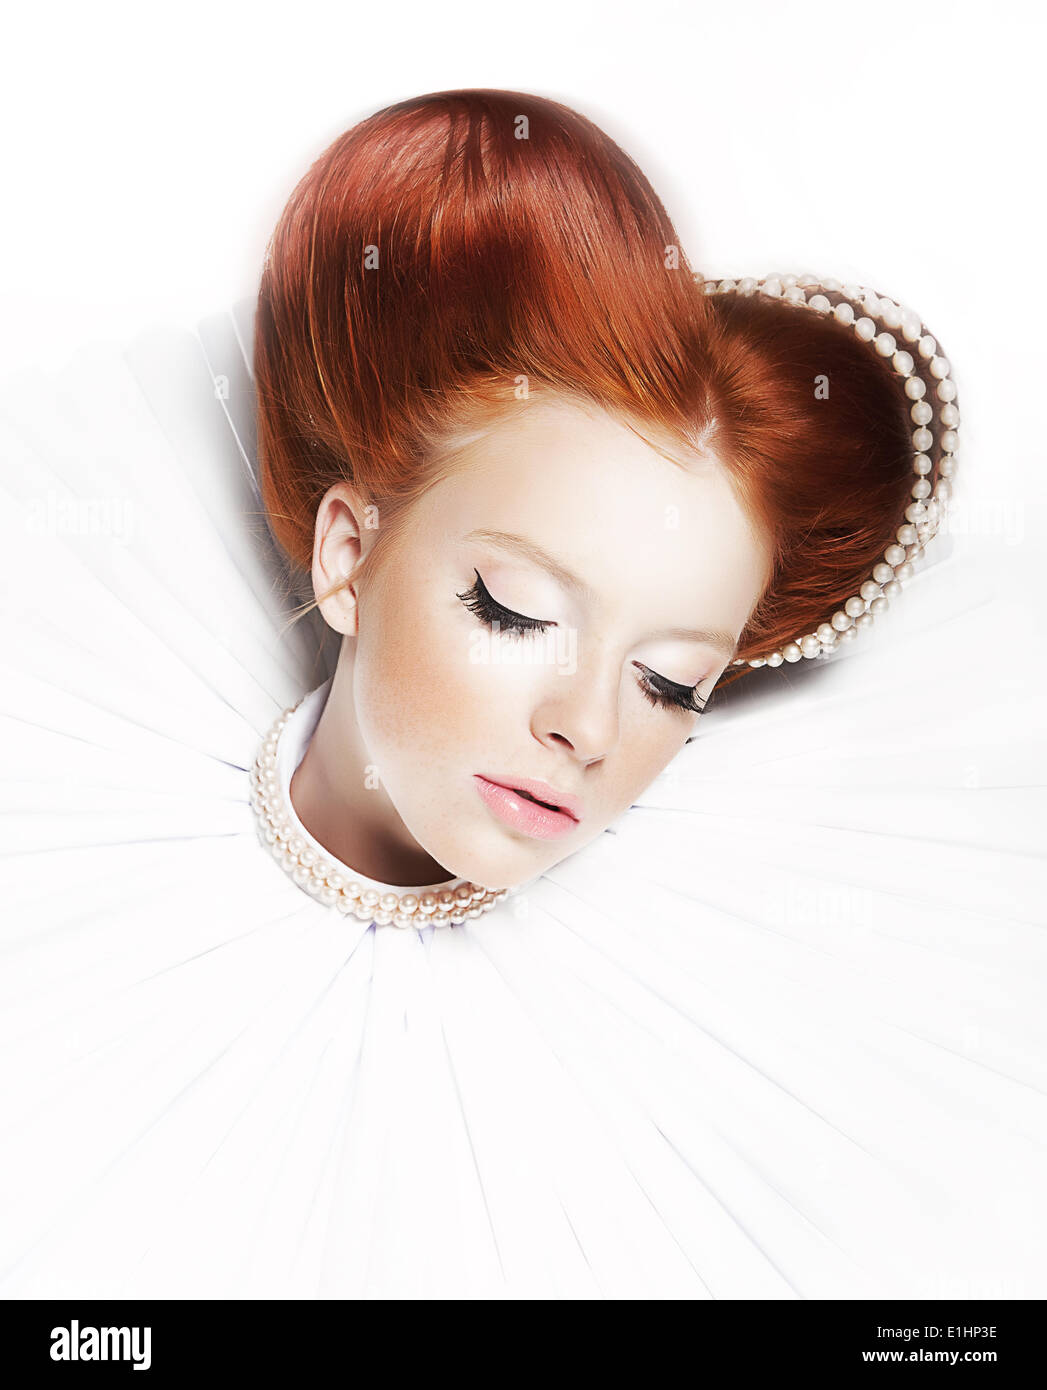 Renaissance style - dreamy cute female - redhead freckled girl with pearly necklace and stagy dramatic make up. Series of photos - Stock Image